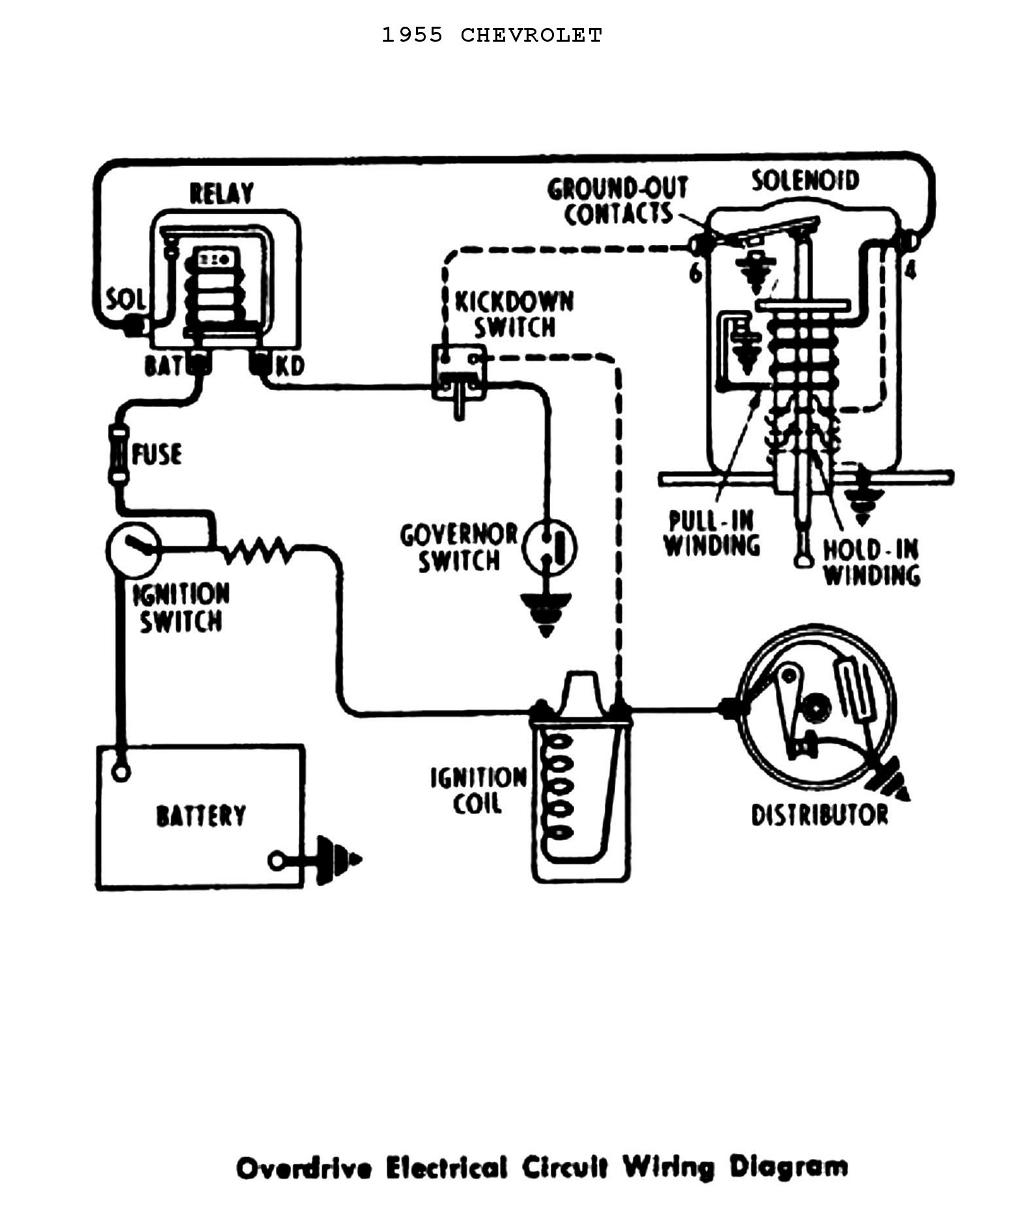 wiring diagram for 1996 impala ss